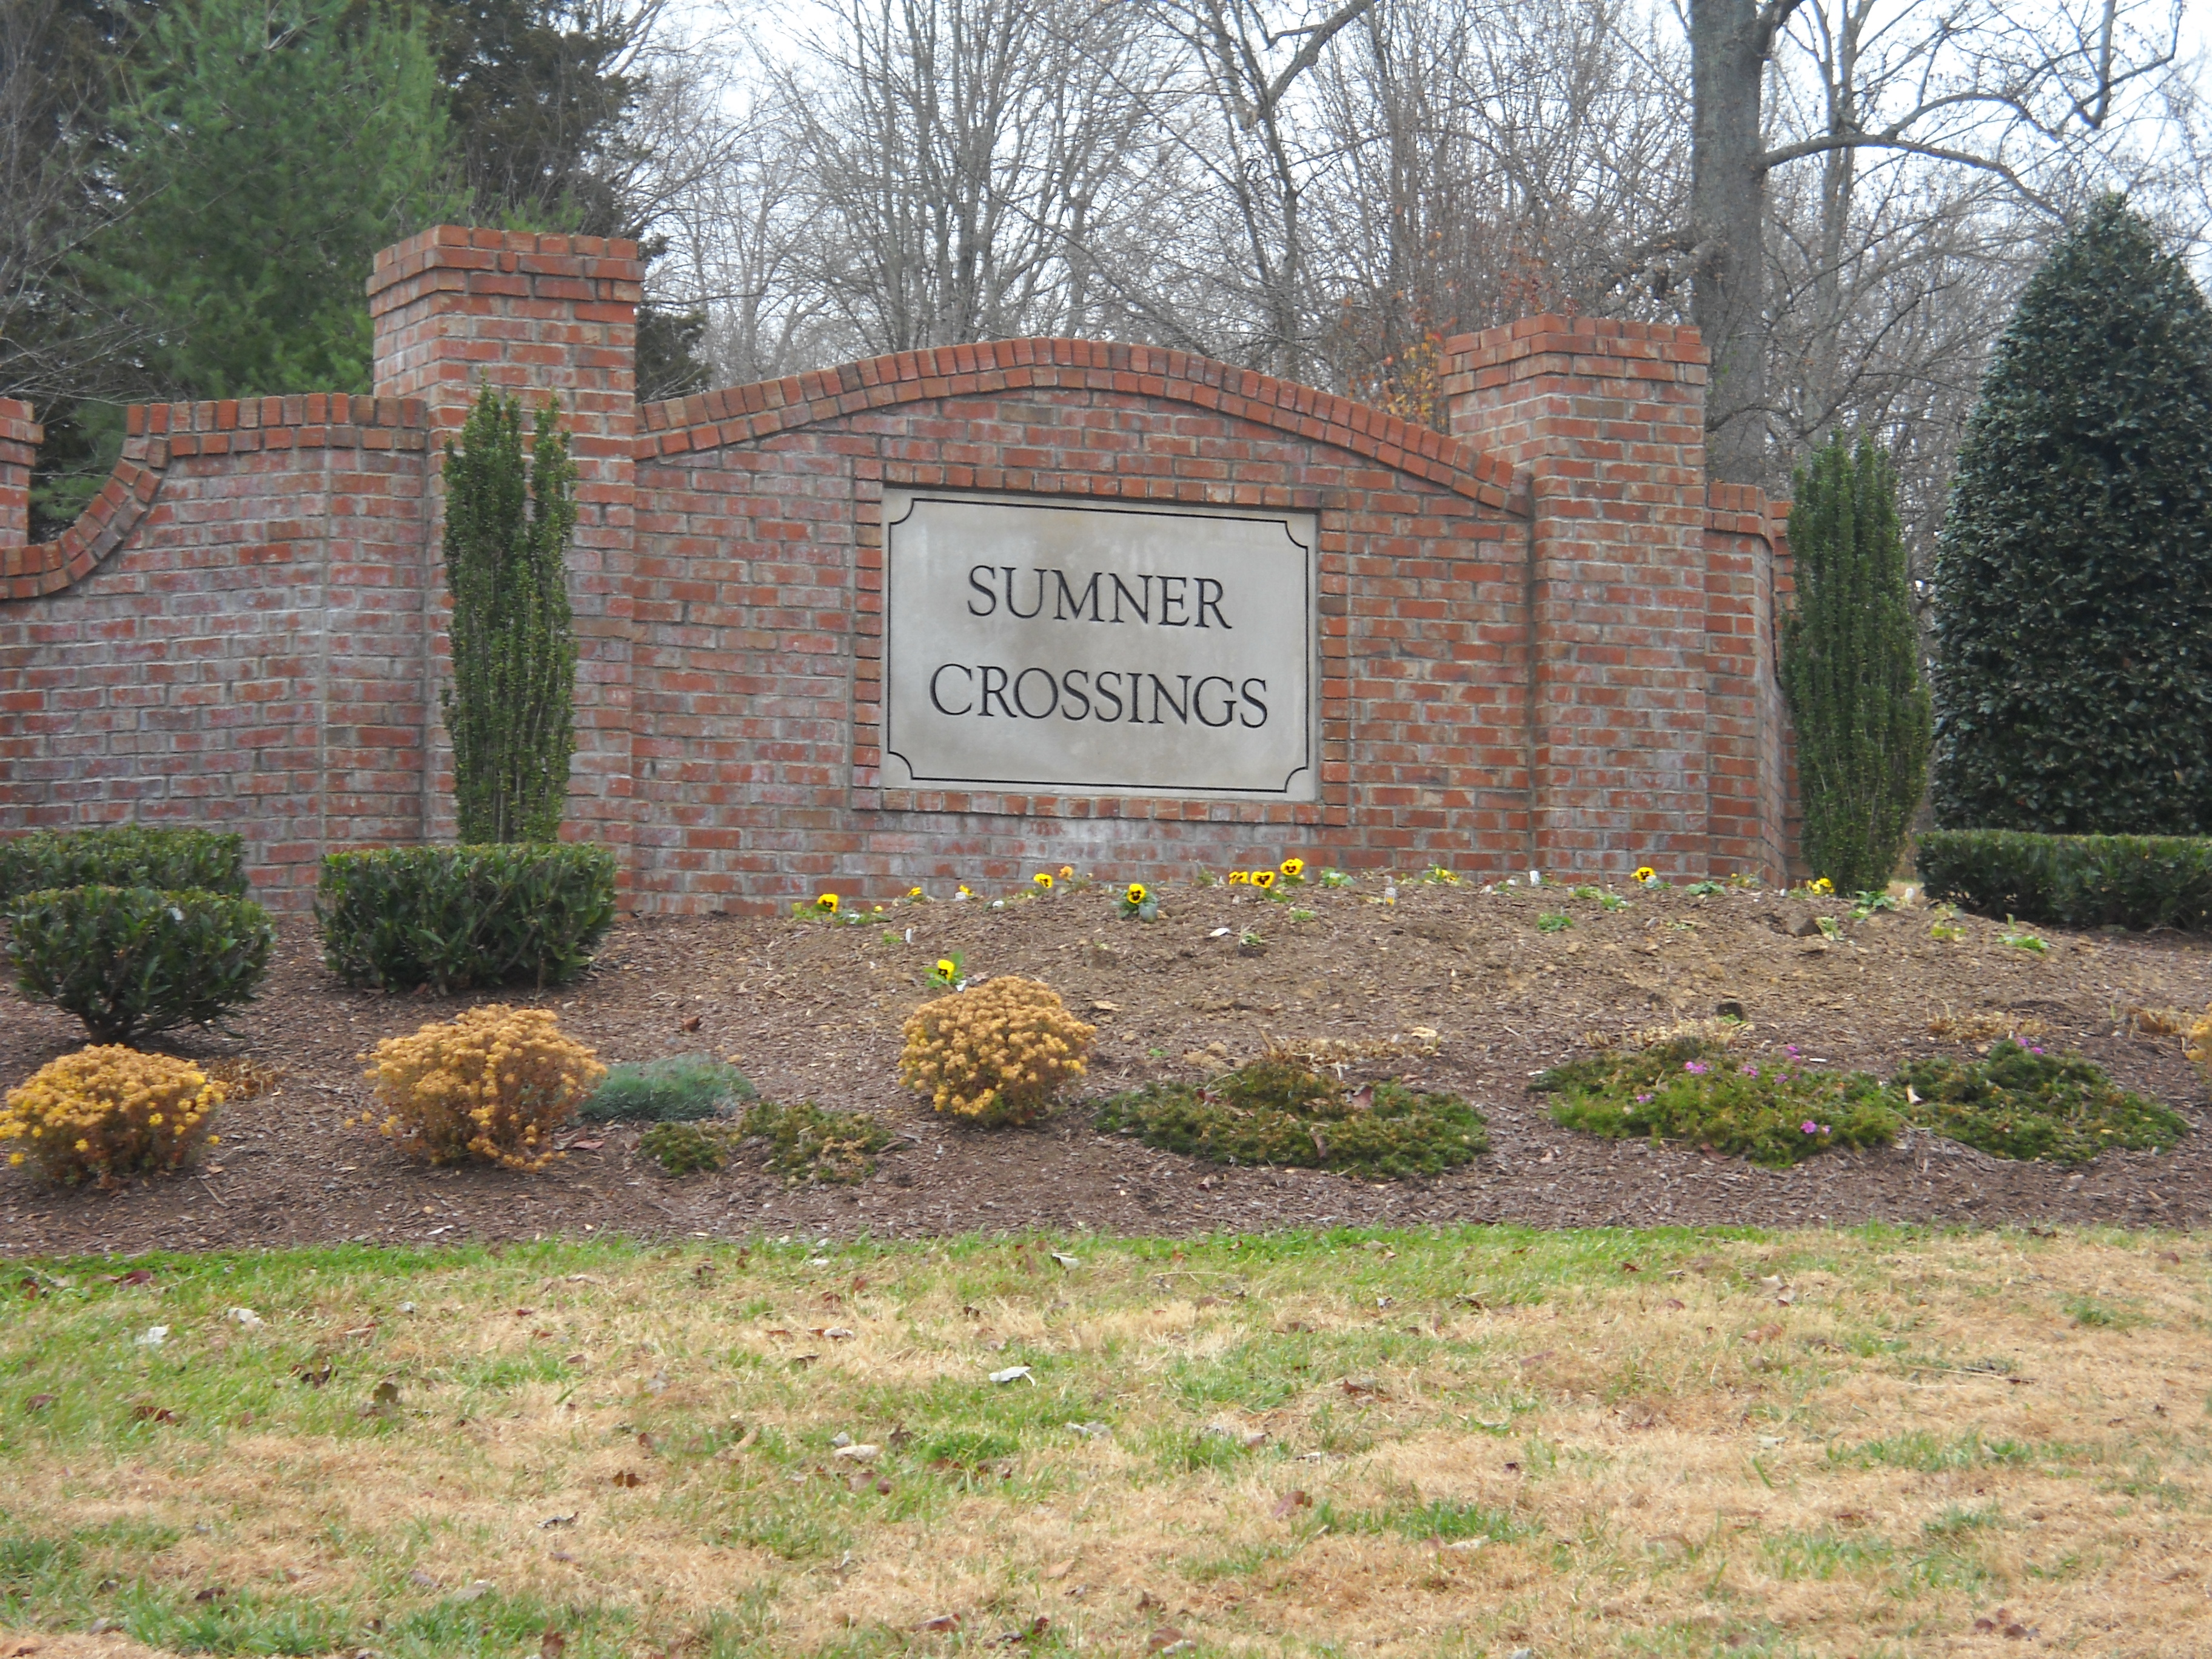 Sumner Crossings Subdivision